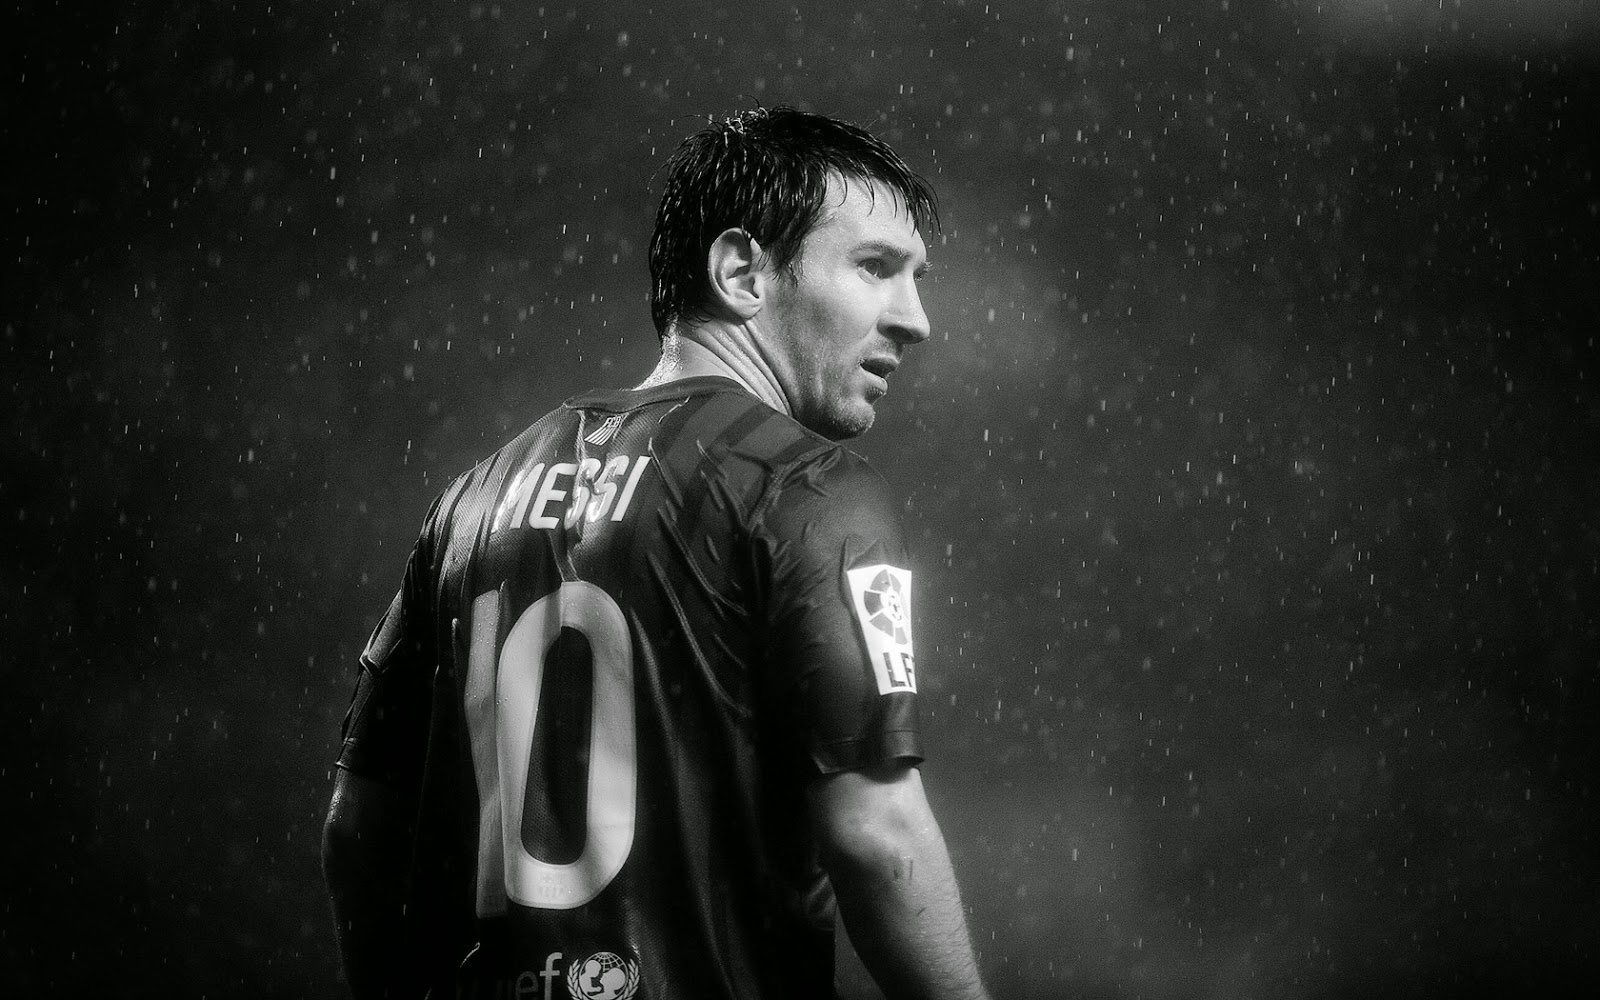 ALL SPORTS PLAYERS Lionel Messi hd Wallpapers 2014 Fifa World Cup 1600x1000